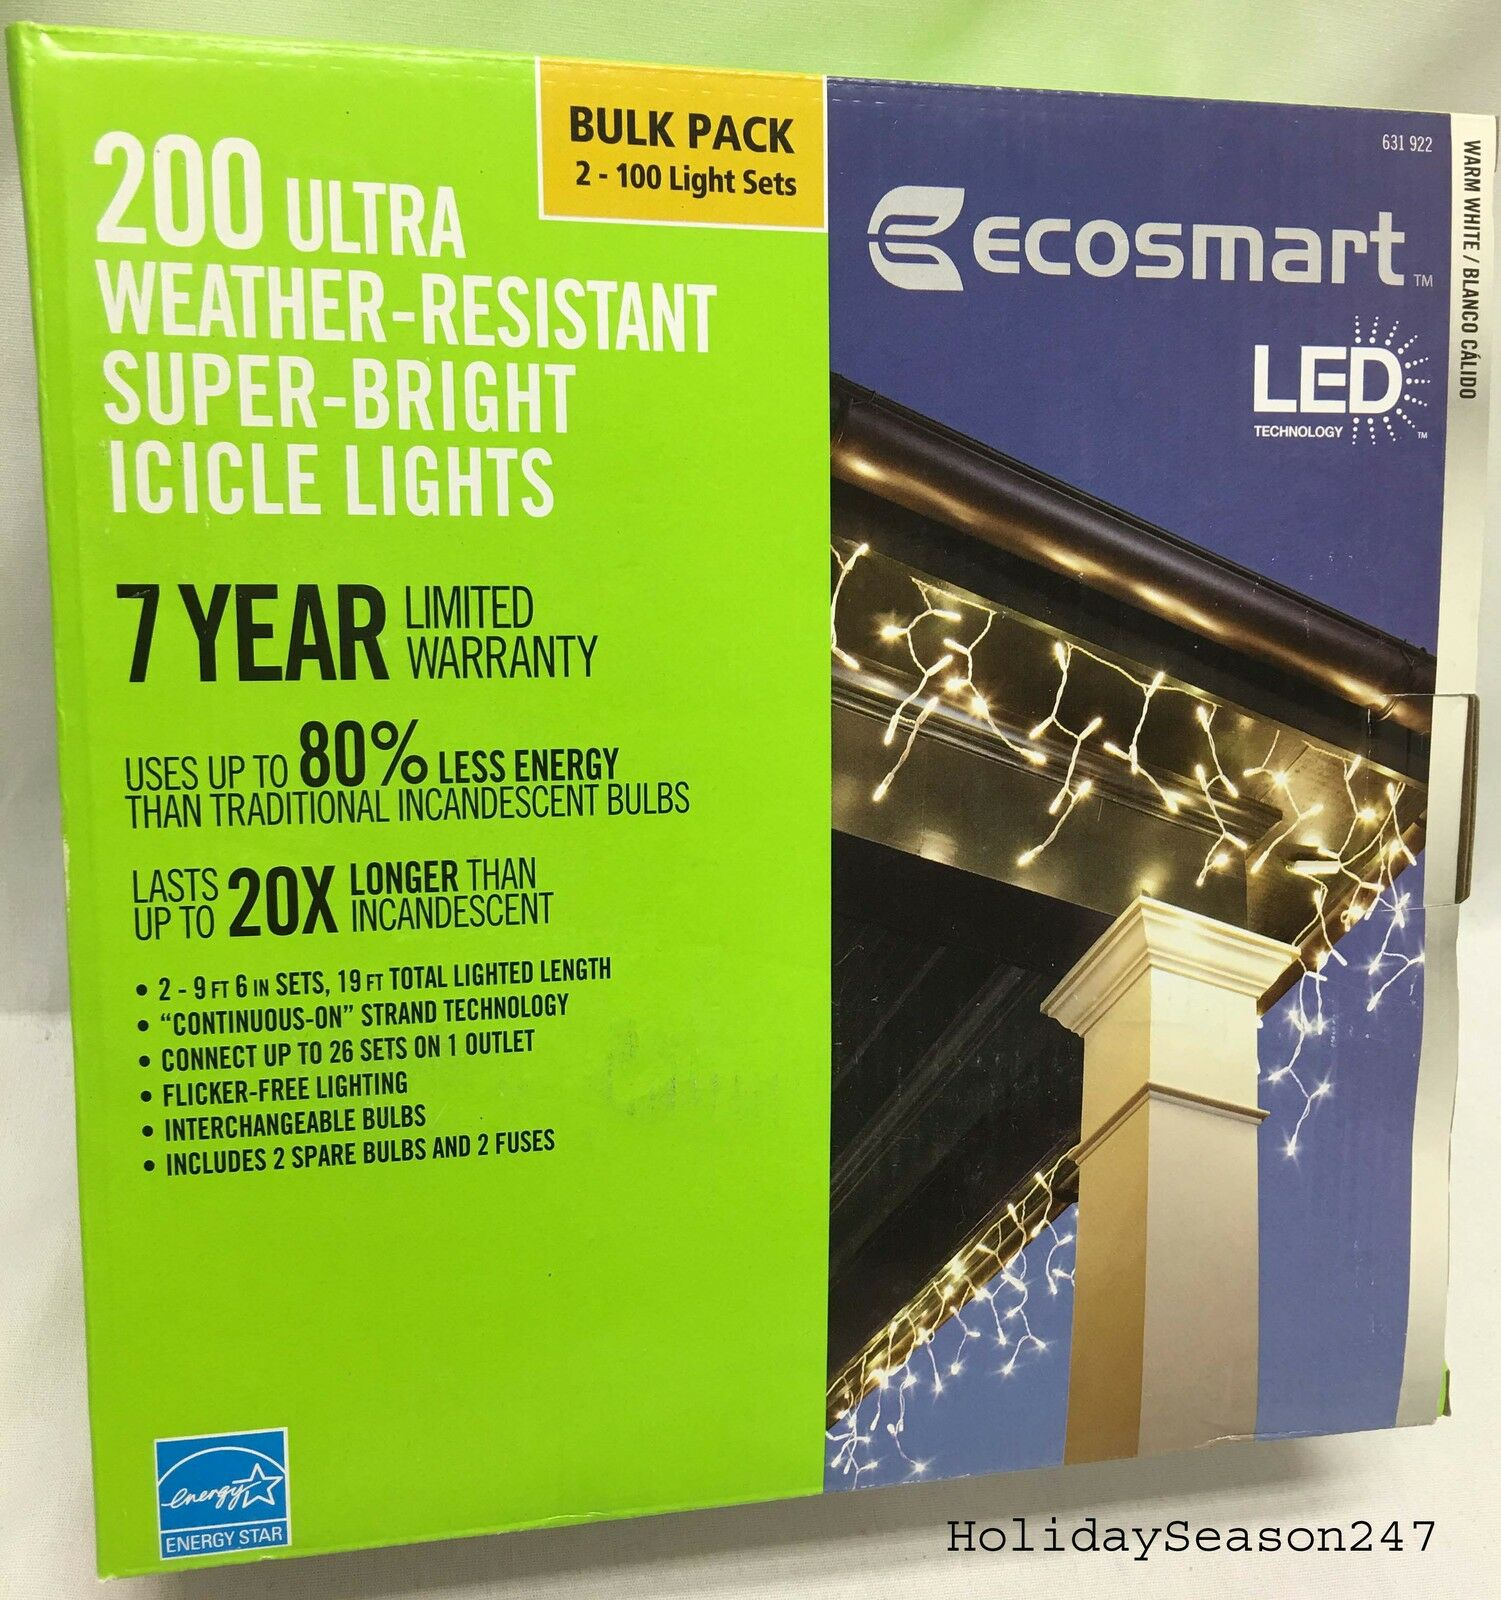 picture 2 of 3 - Ecosmart Led Christmas Lights